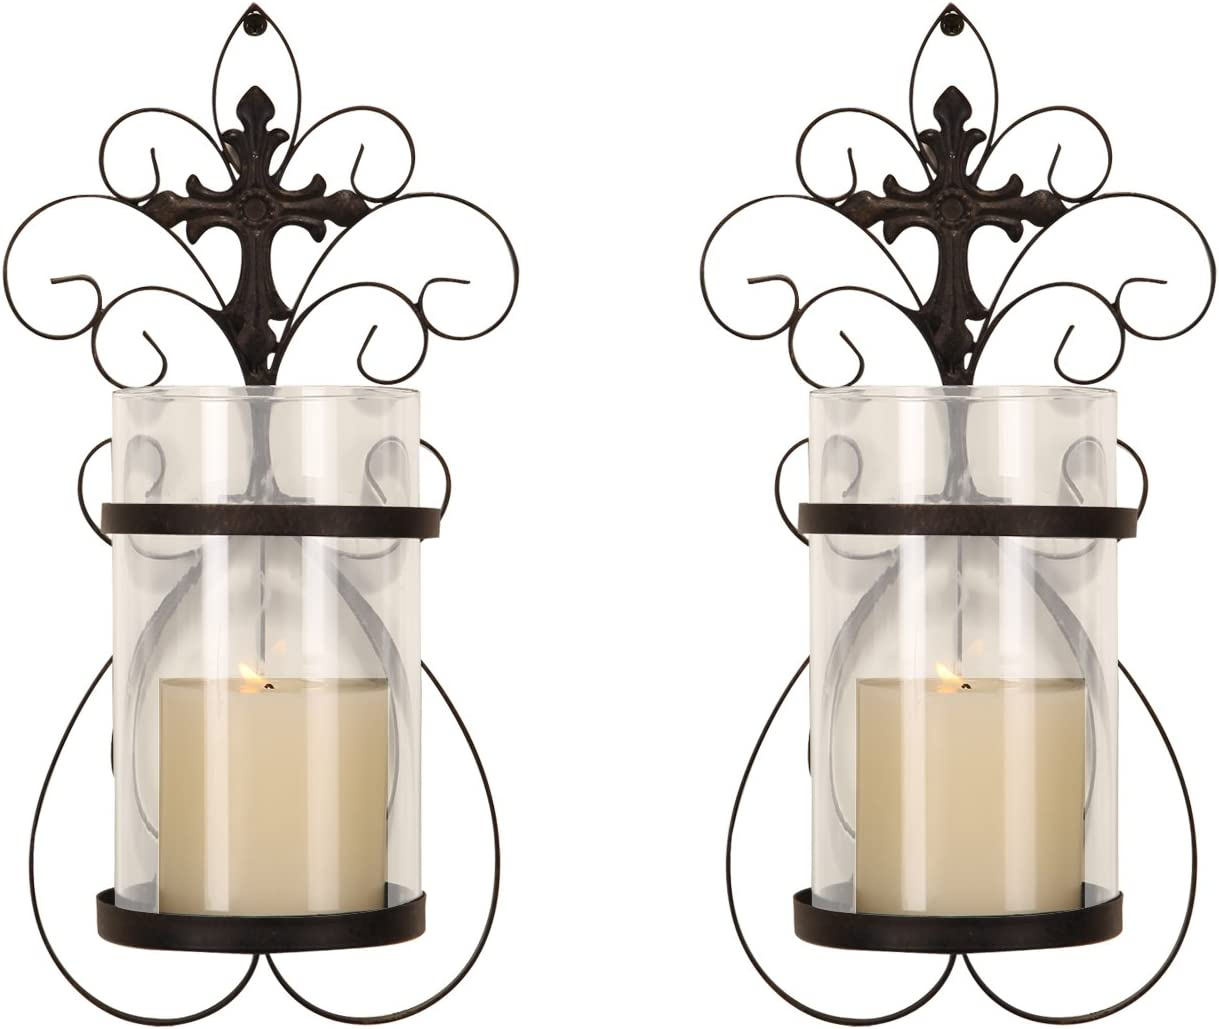 Asense Iron and Glass Vertical Wall Hanging Candle Holder Sconce Wall Decor for Living Room, Bedroom (Set of 2)